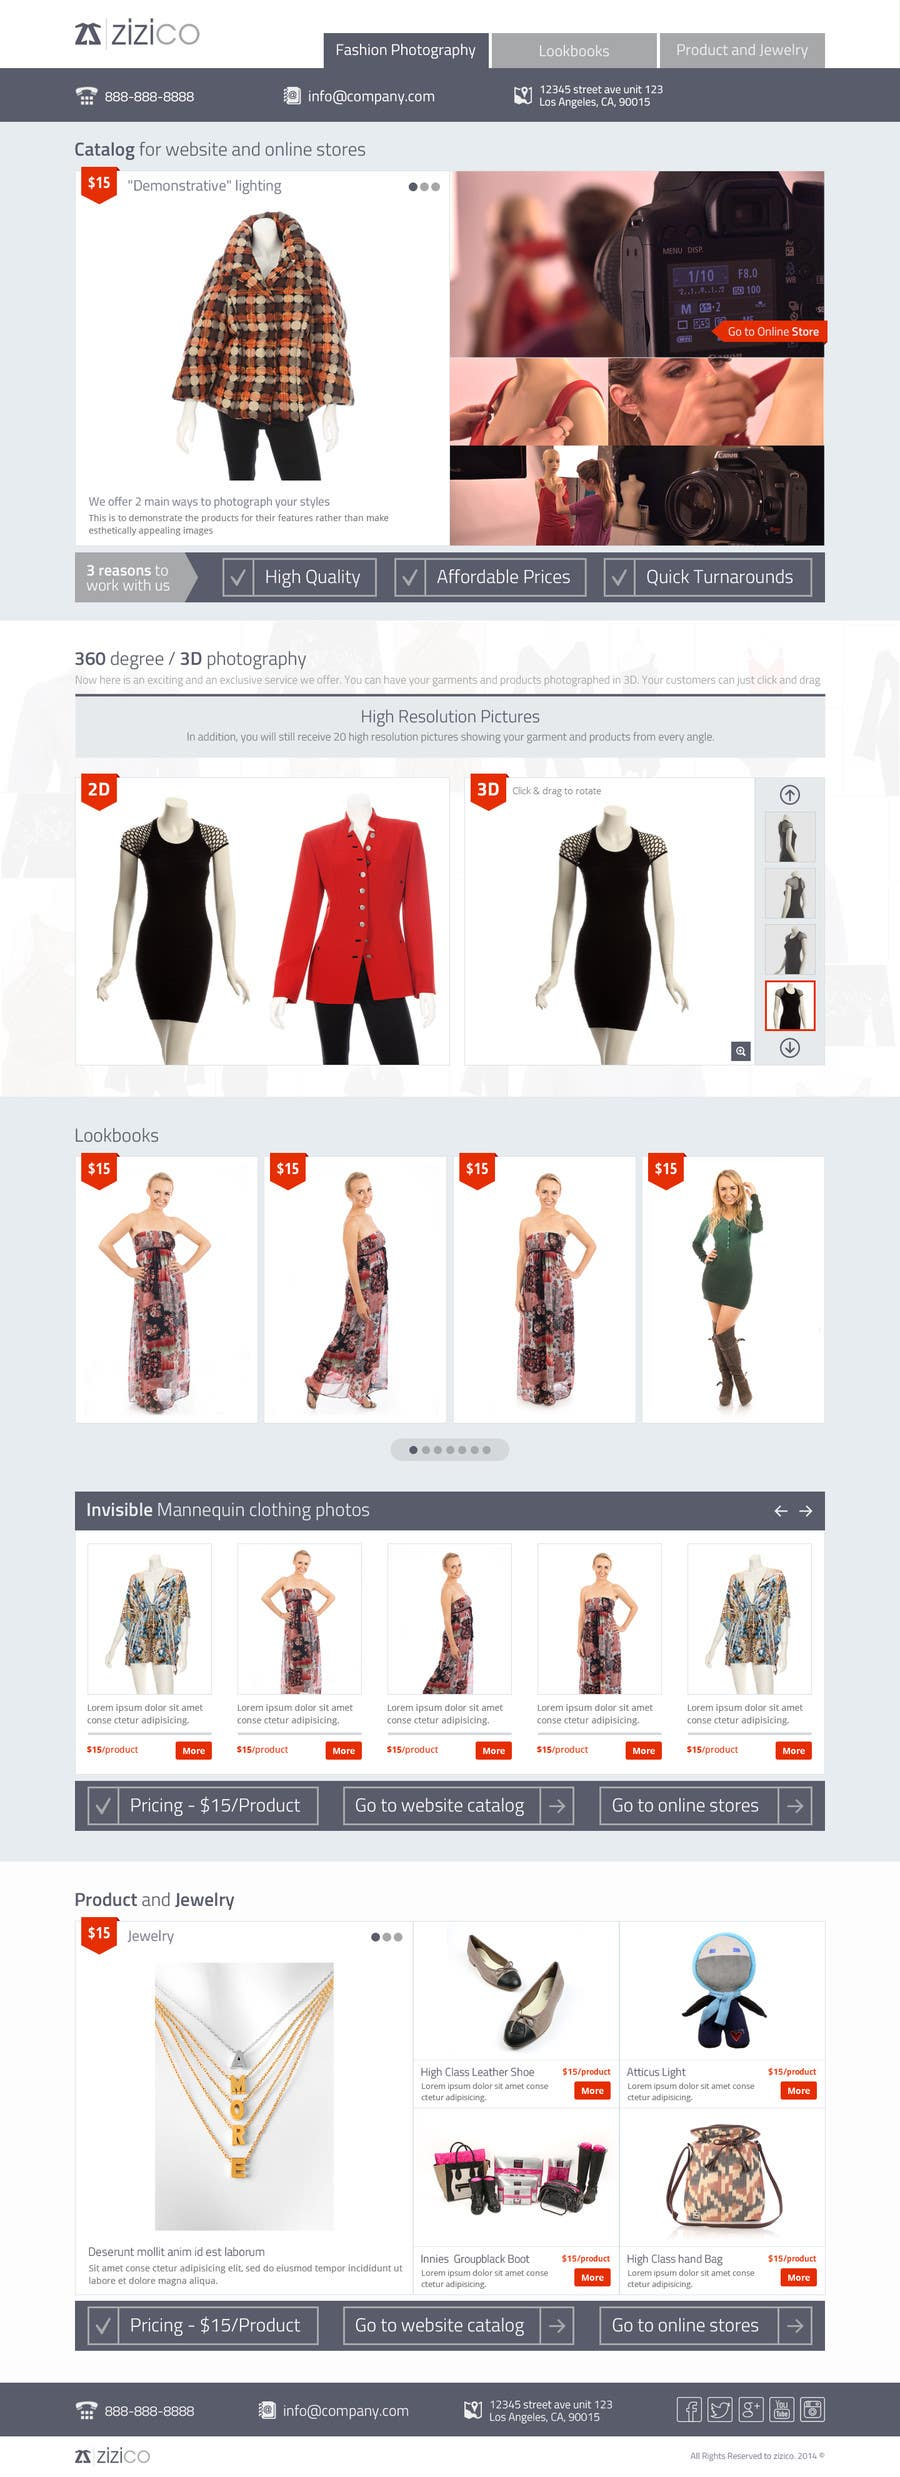 a great design for Fashion and Product photography landing